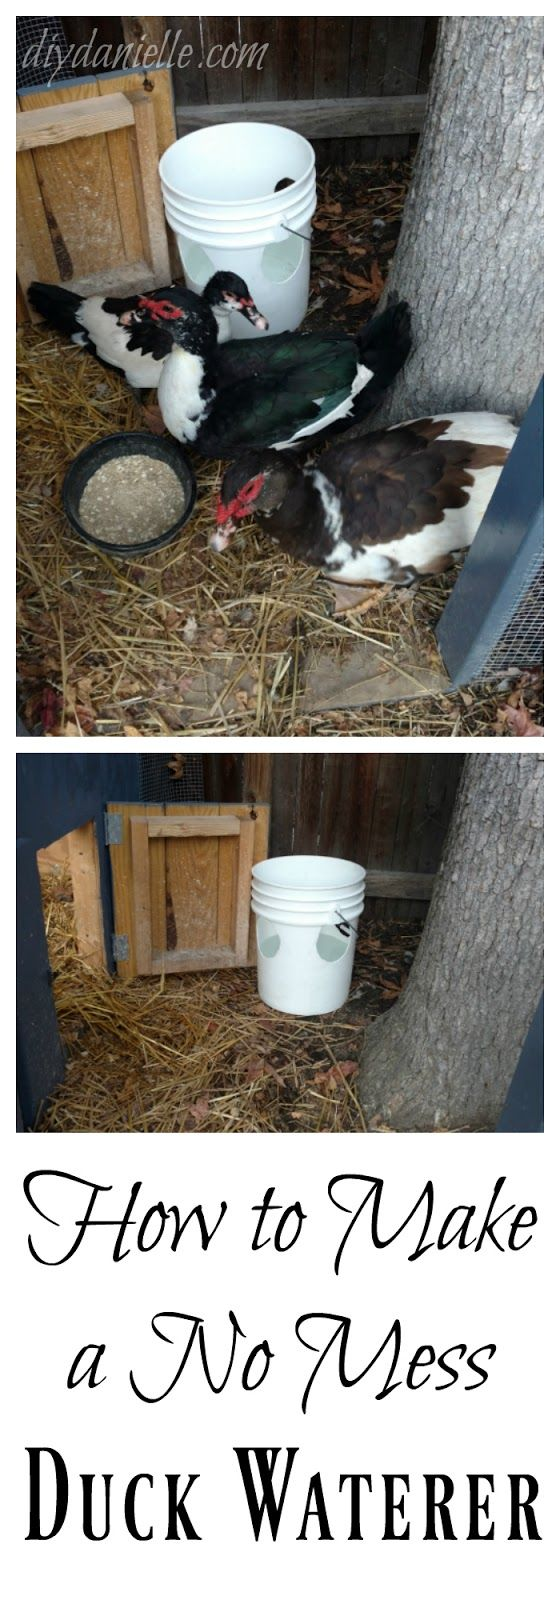 Wondering how to keep muck out of the duck water? Here's our simple solution: A no mess duck waterer.